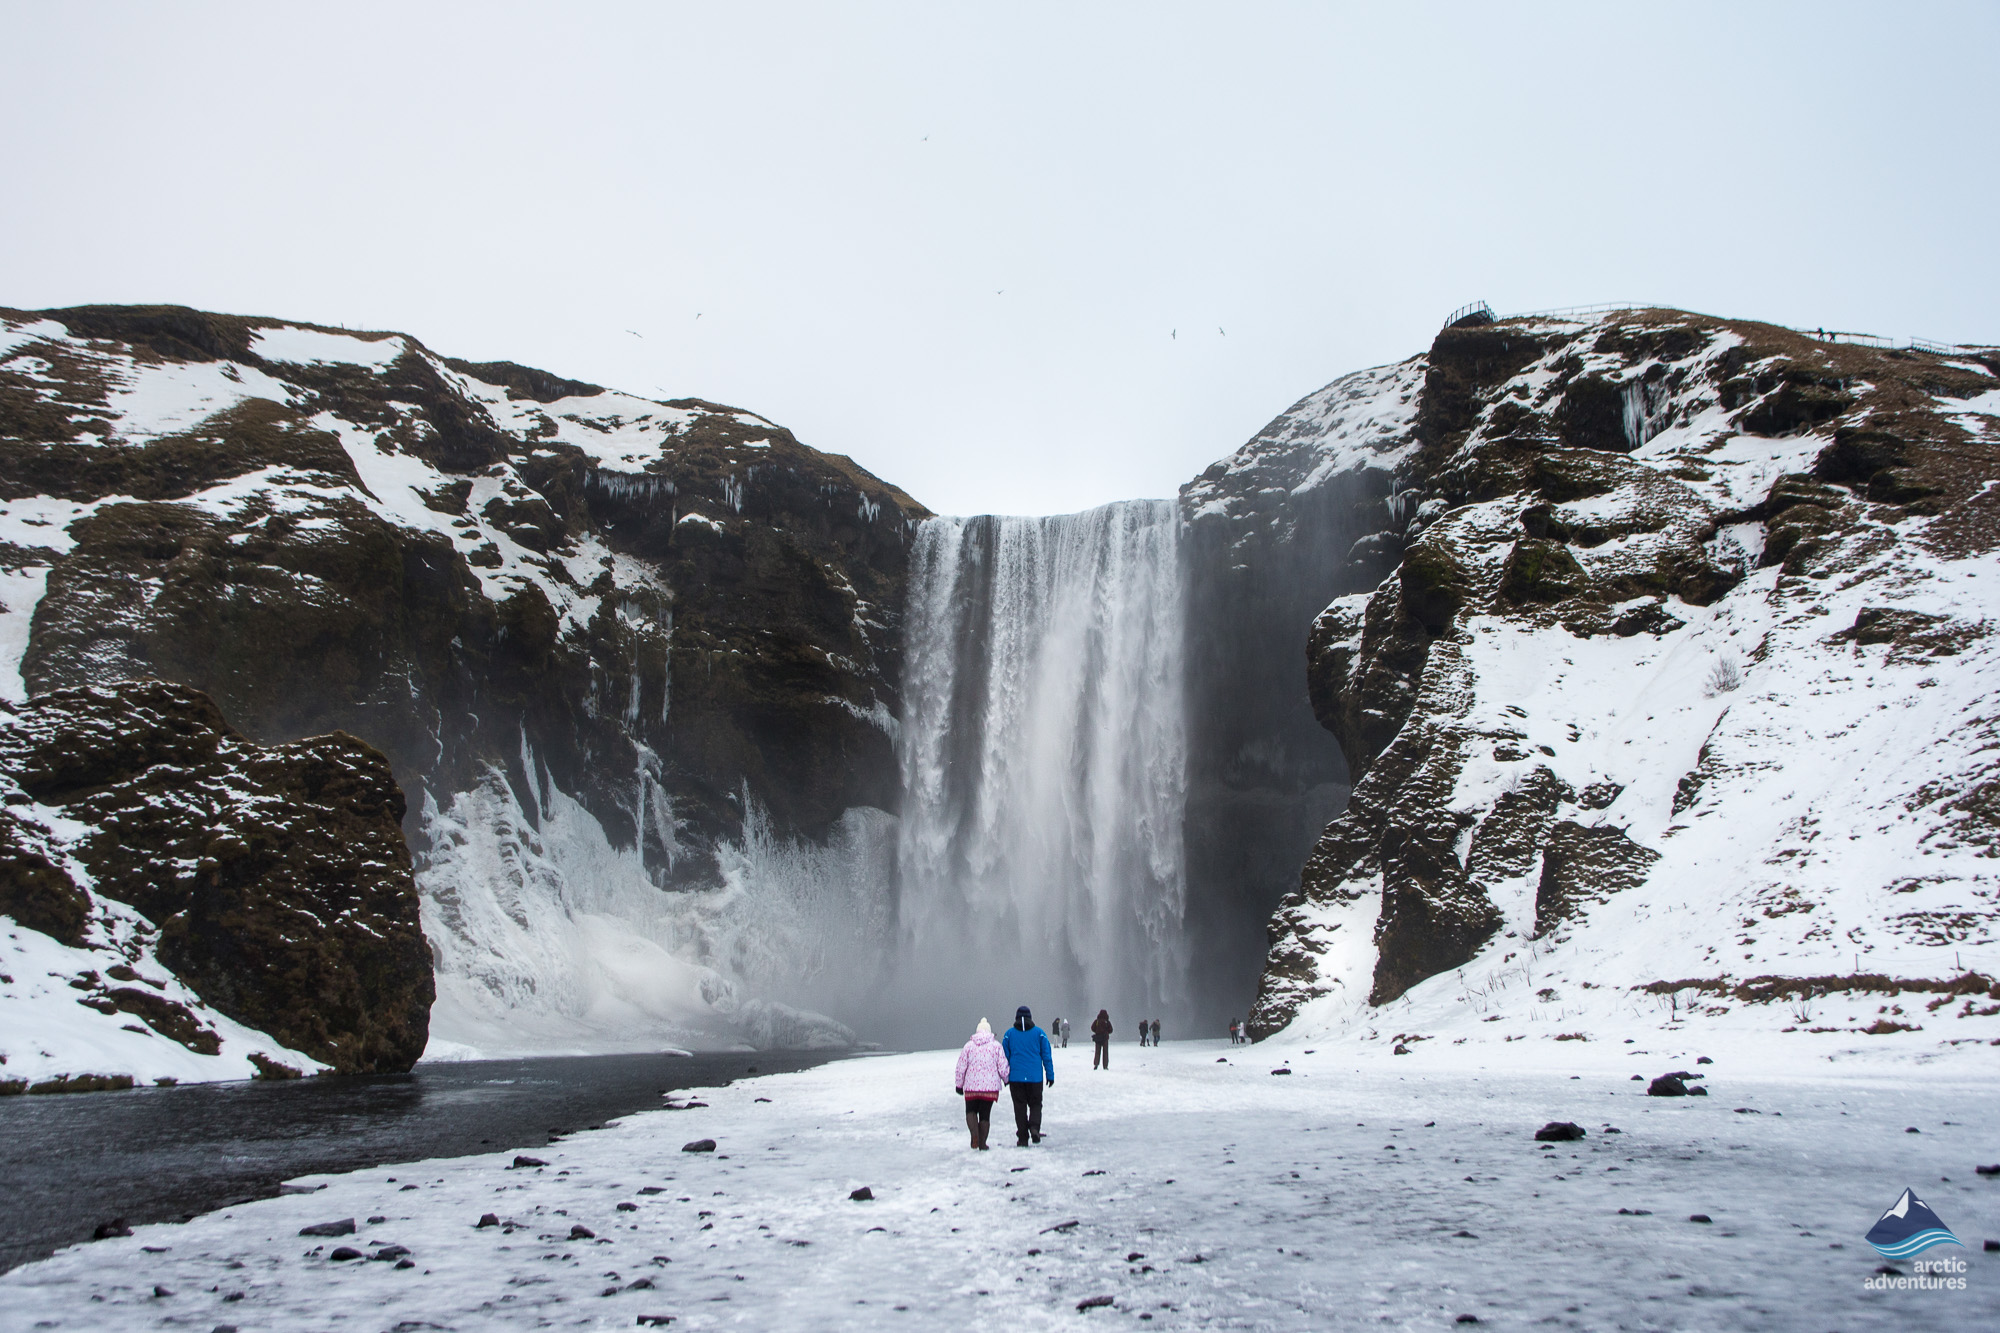 Winter at Icelandic Waterfall